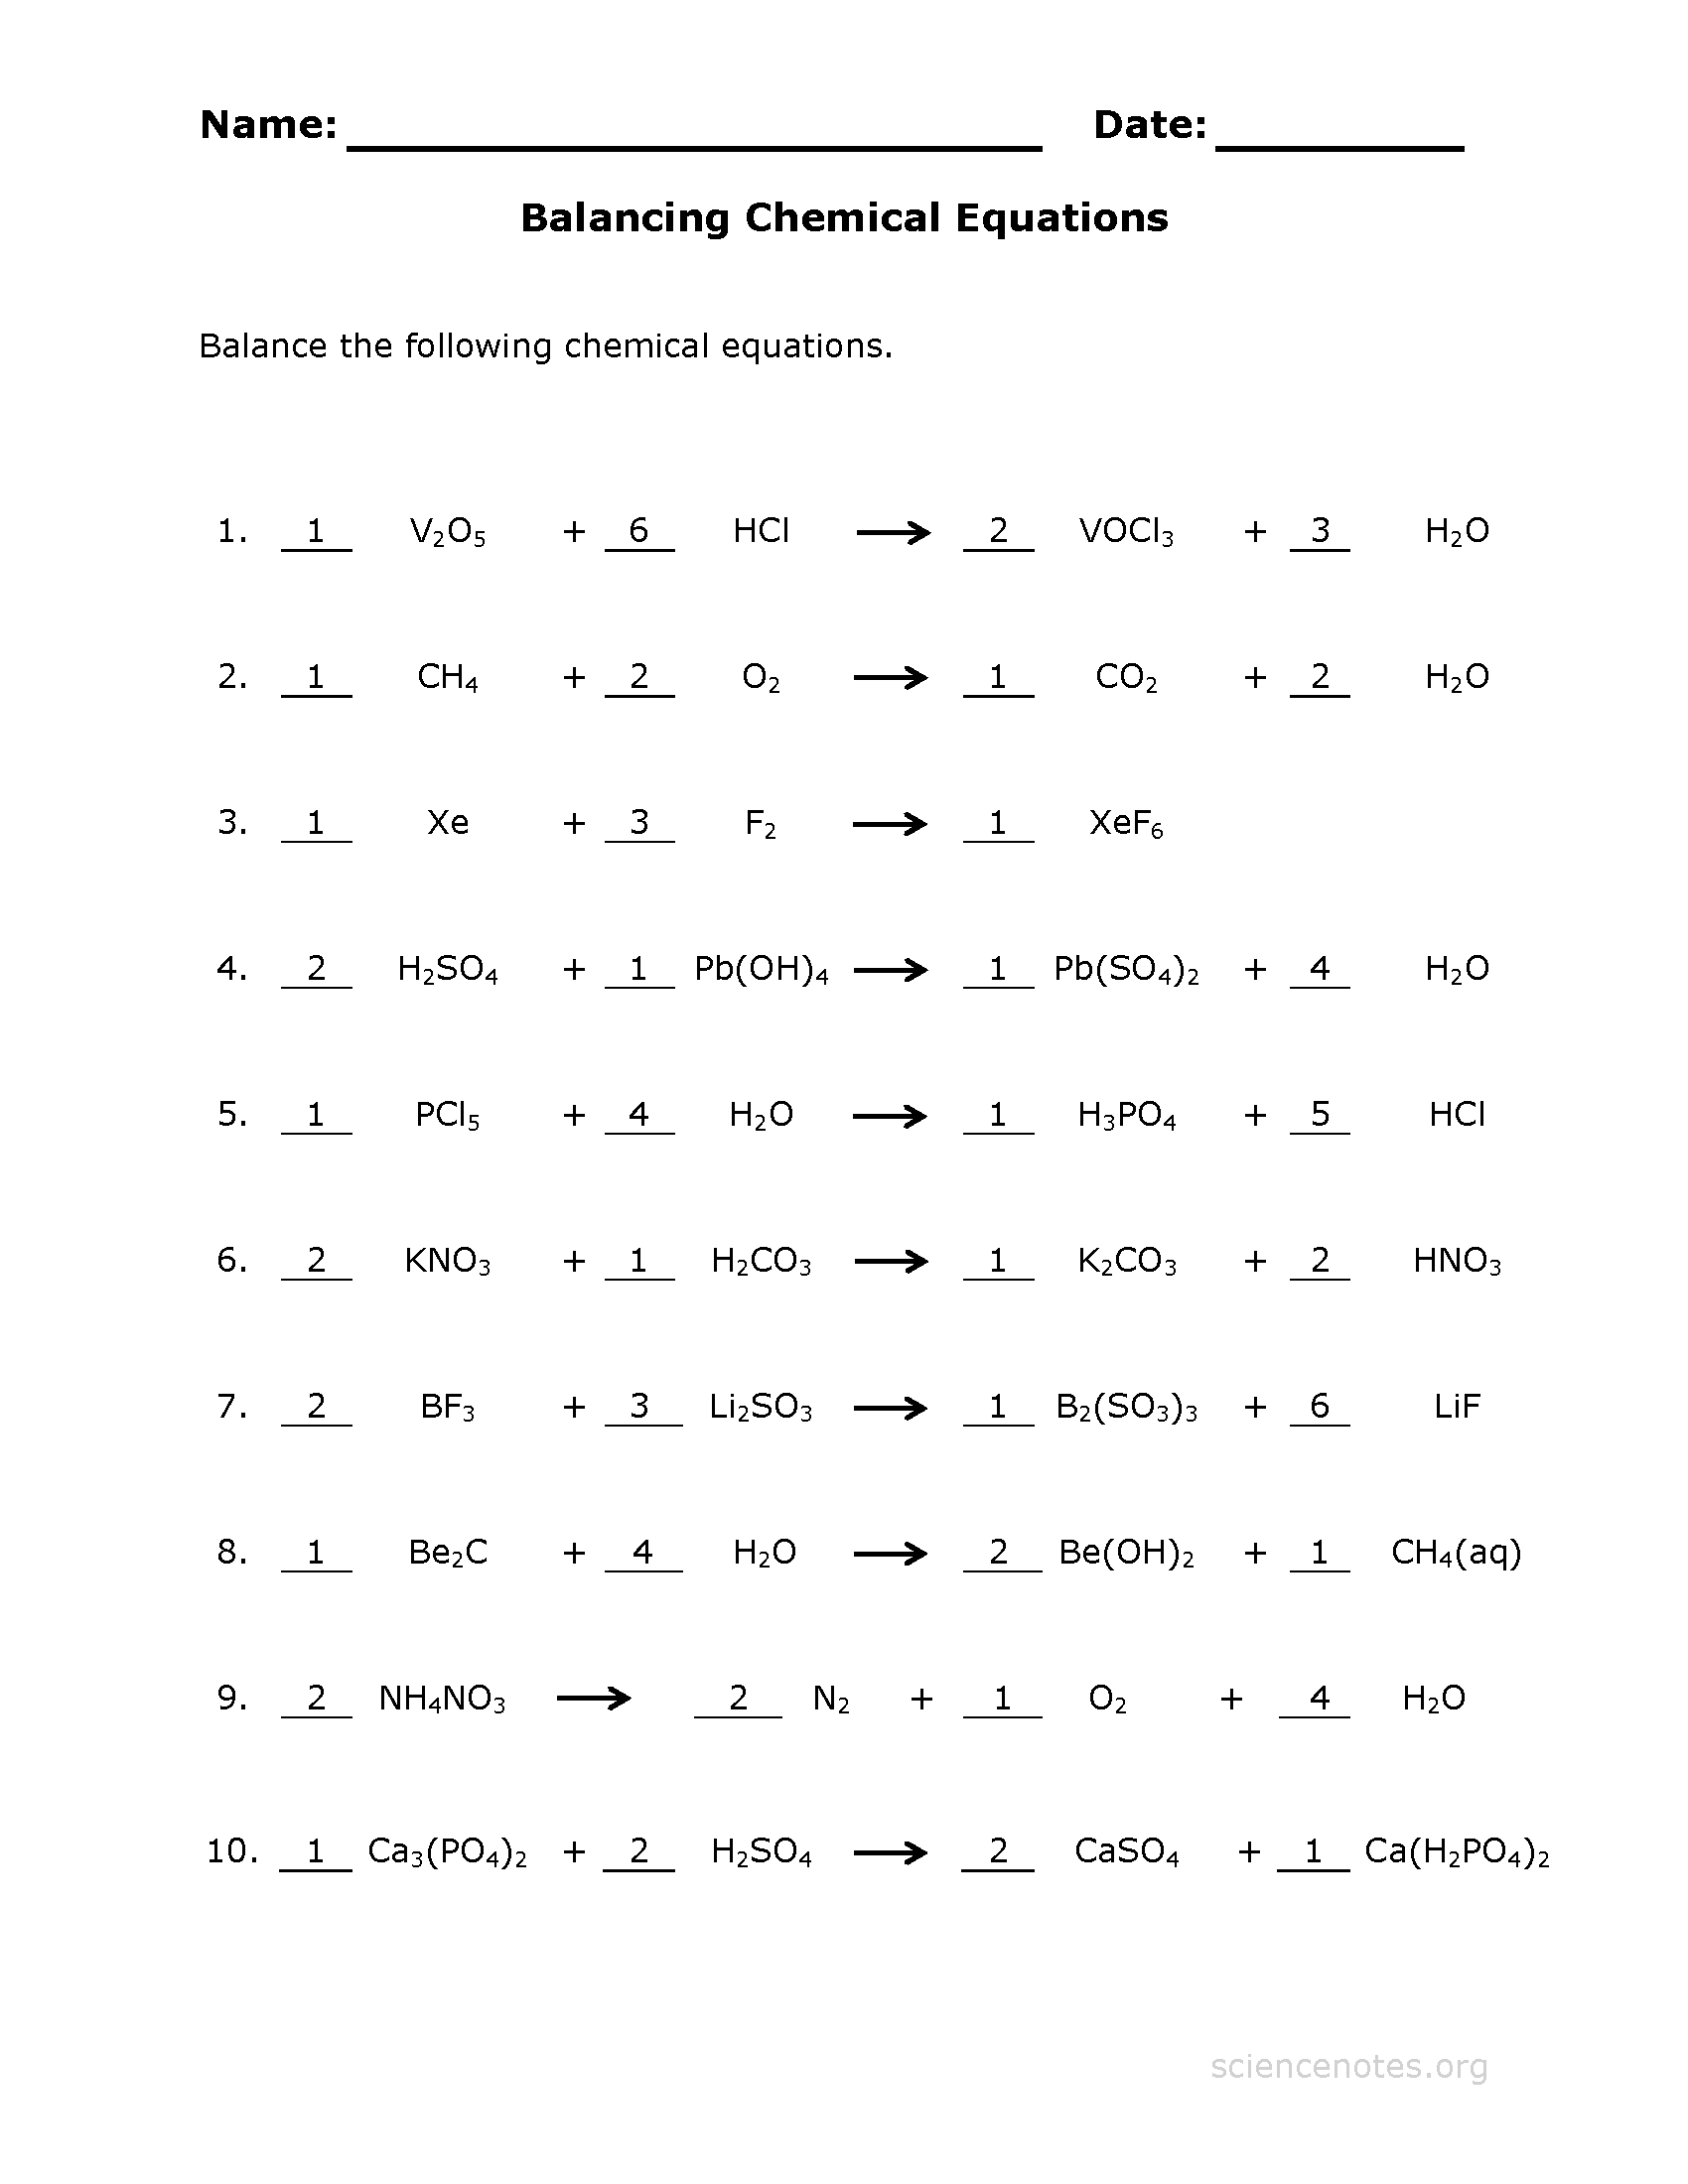 Balancing Chemical Equations Worksheet 3 Answers Sharebrowse – Balancing Chemical Equations Worksheet 1 Answers